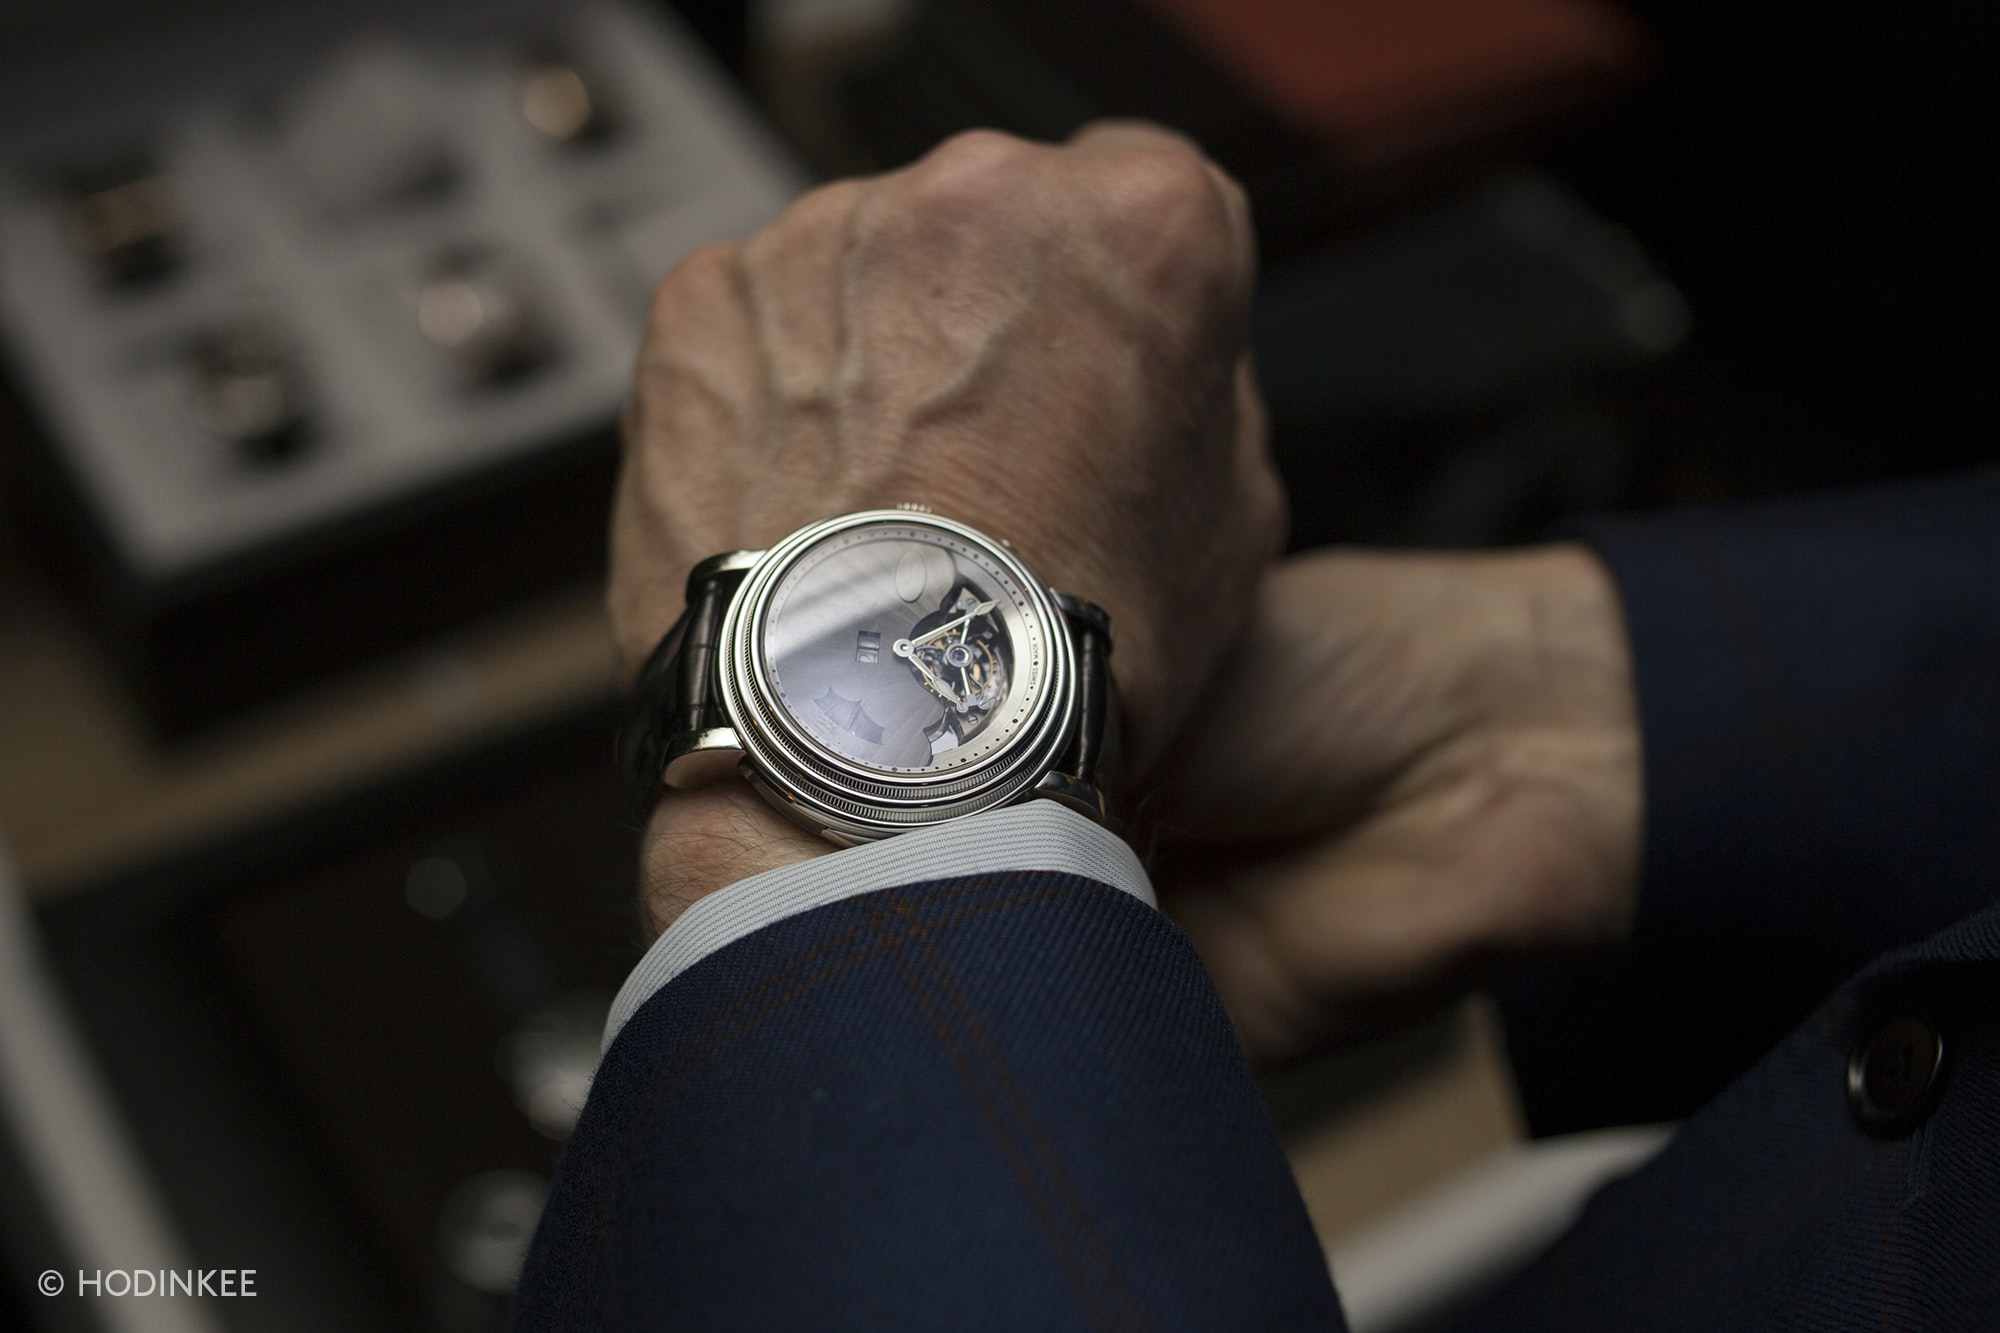 Toric Westminster Grand Date in platinum. Photo Report: A Collectors' Dinner With Parmigiani Fleurier Photo Report: A Collectors' Dinner With Parmigiani Fleurier 20010679 copy